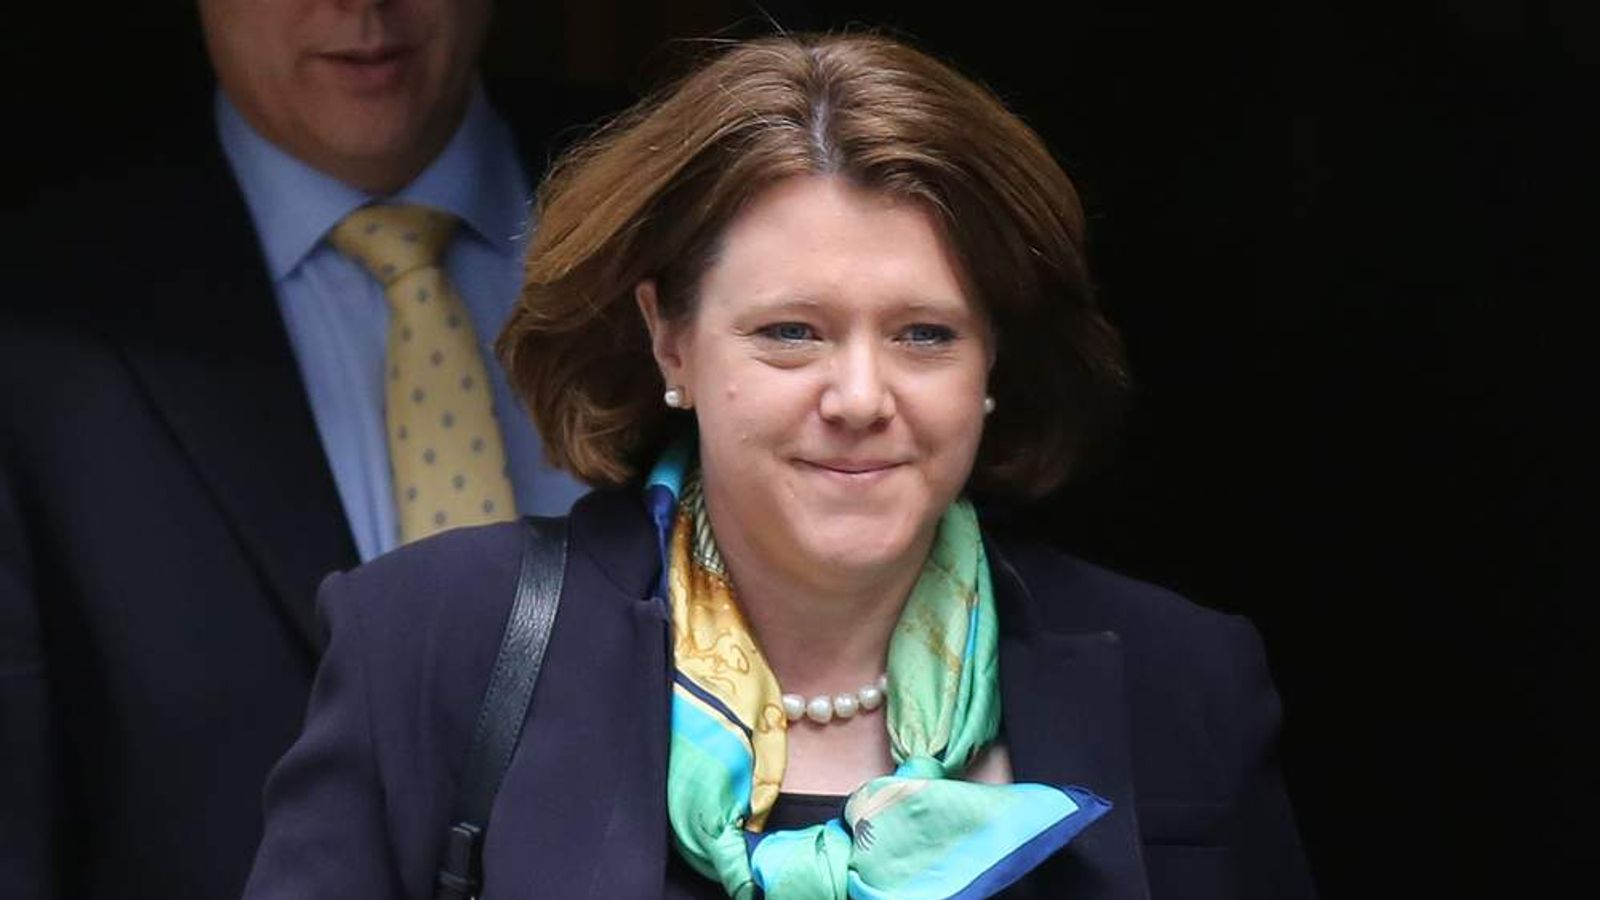 Britain's Minister for Culture, Media and Sport Maria Miller leaves 10 Downing Street after a cabinet meeting in central London